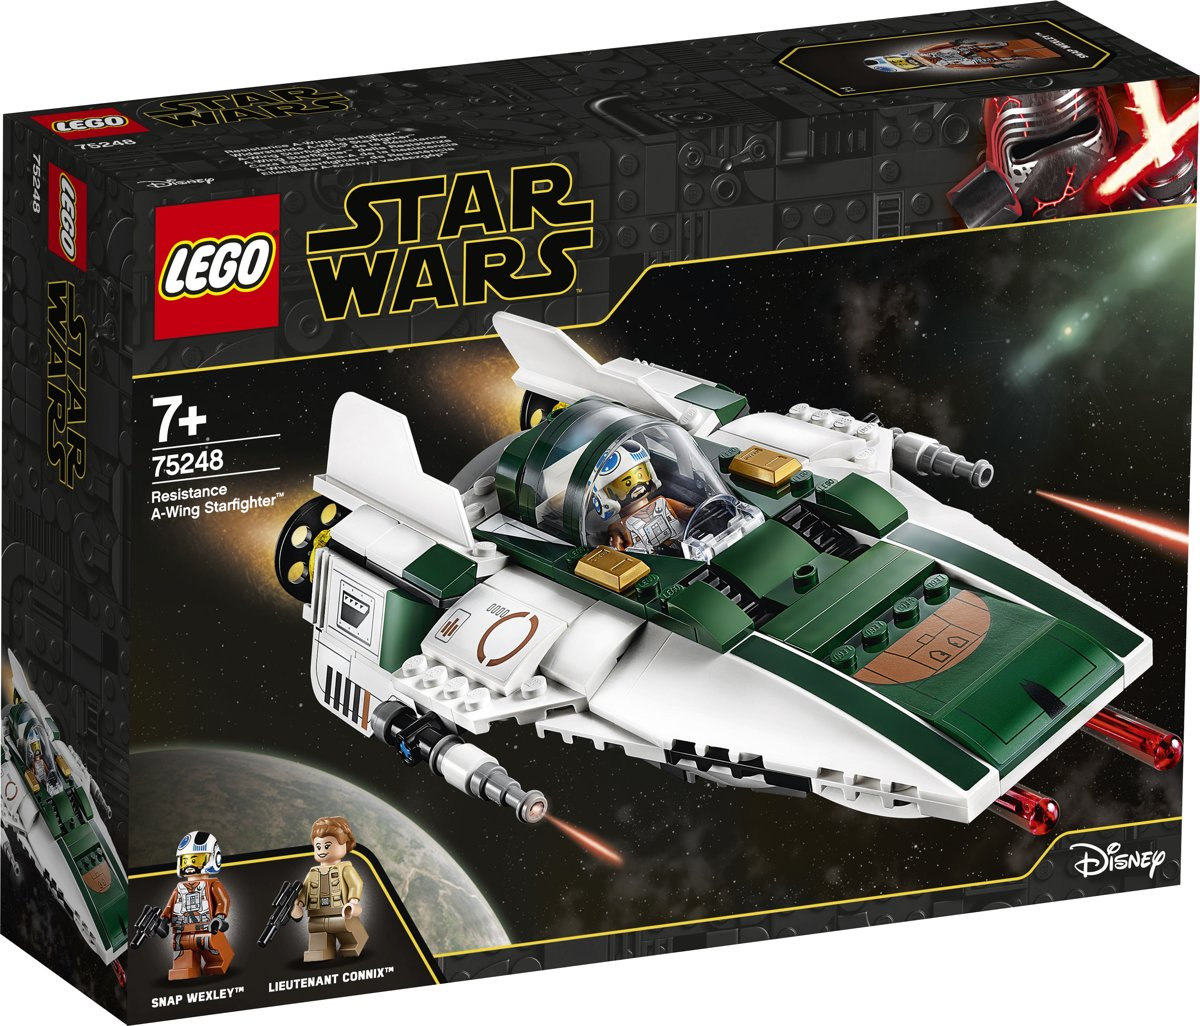 LEGO Star Wars Resistance A-Wing Starfighter - 75248